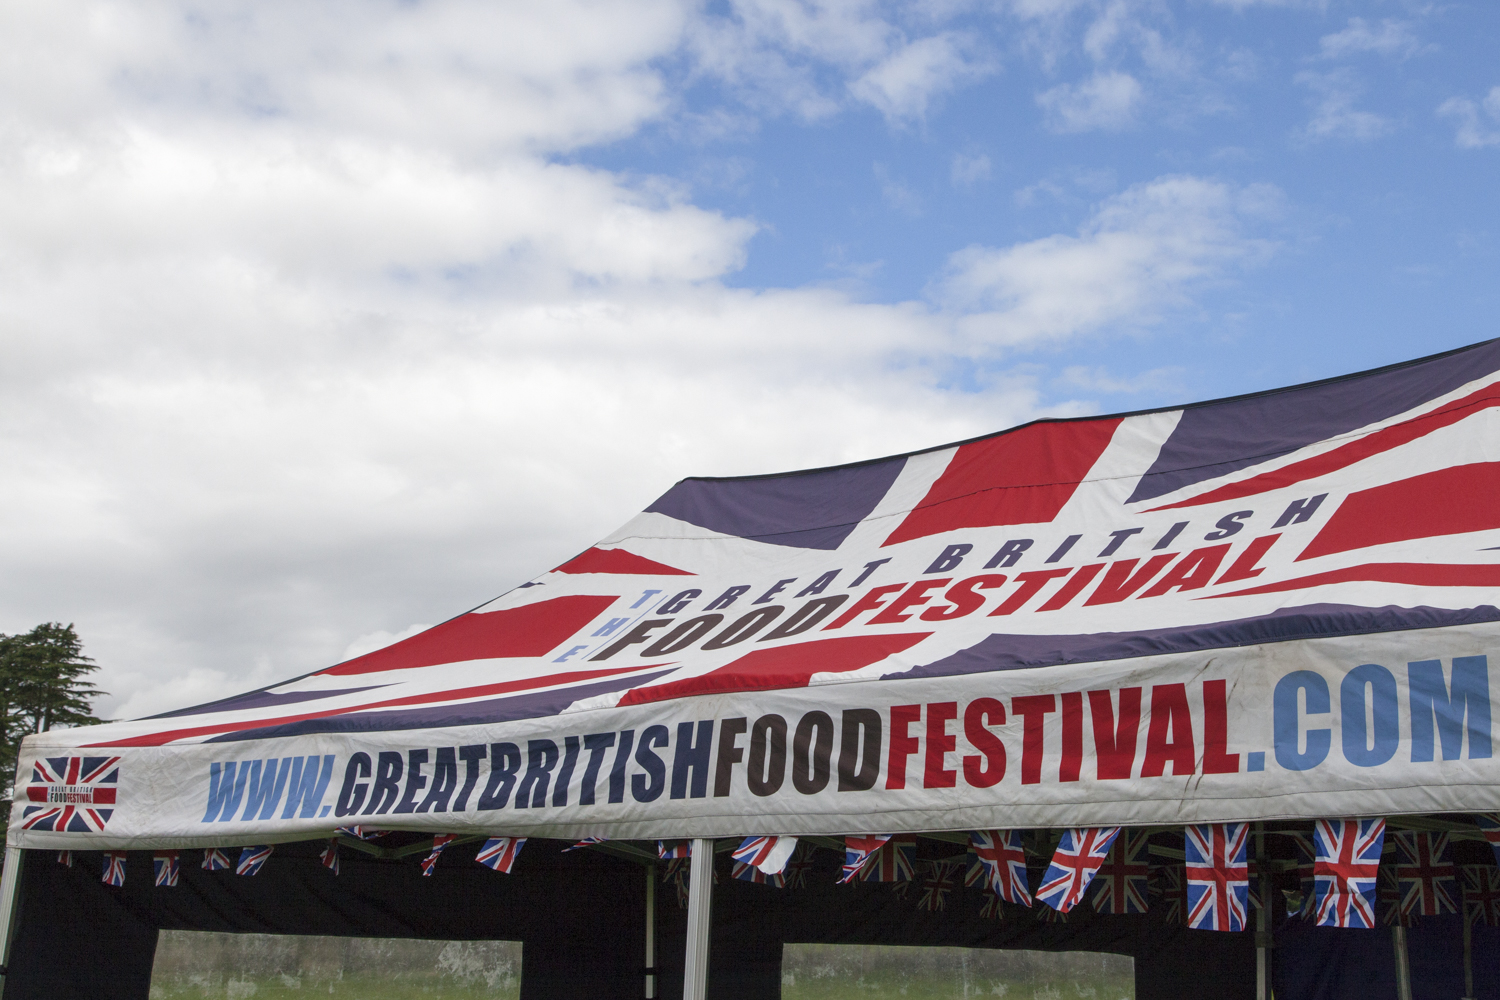 The Great British Food Festival by Tastecard